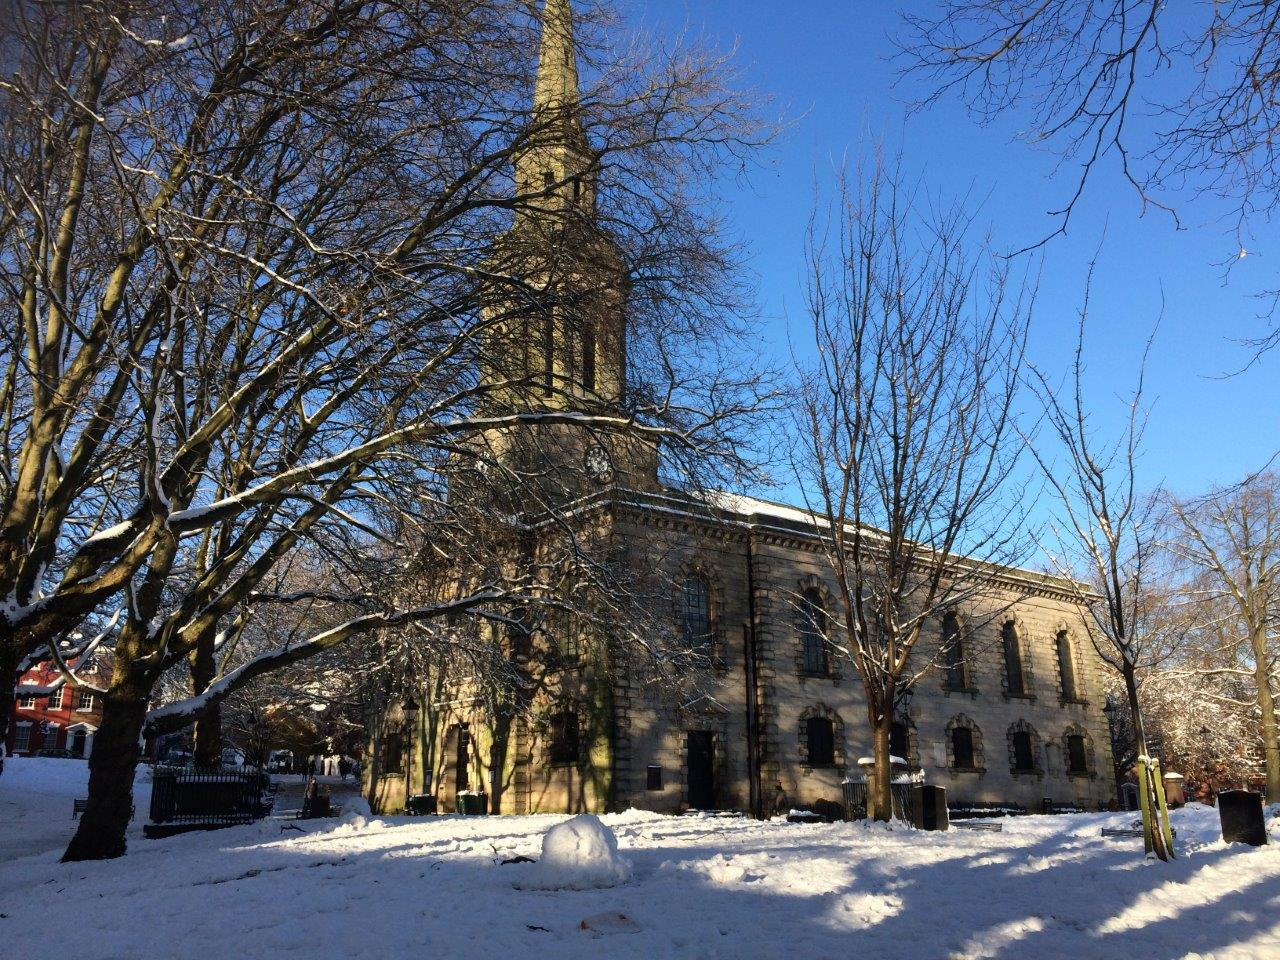 St Pauls Church with snow on the ground